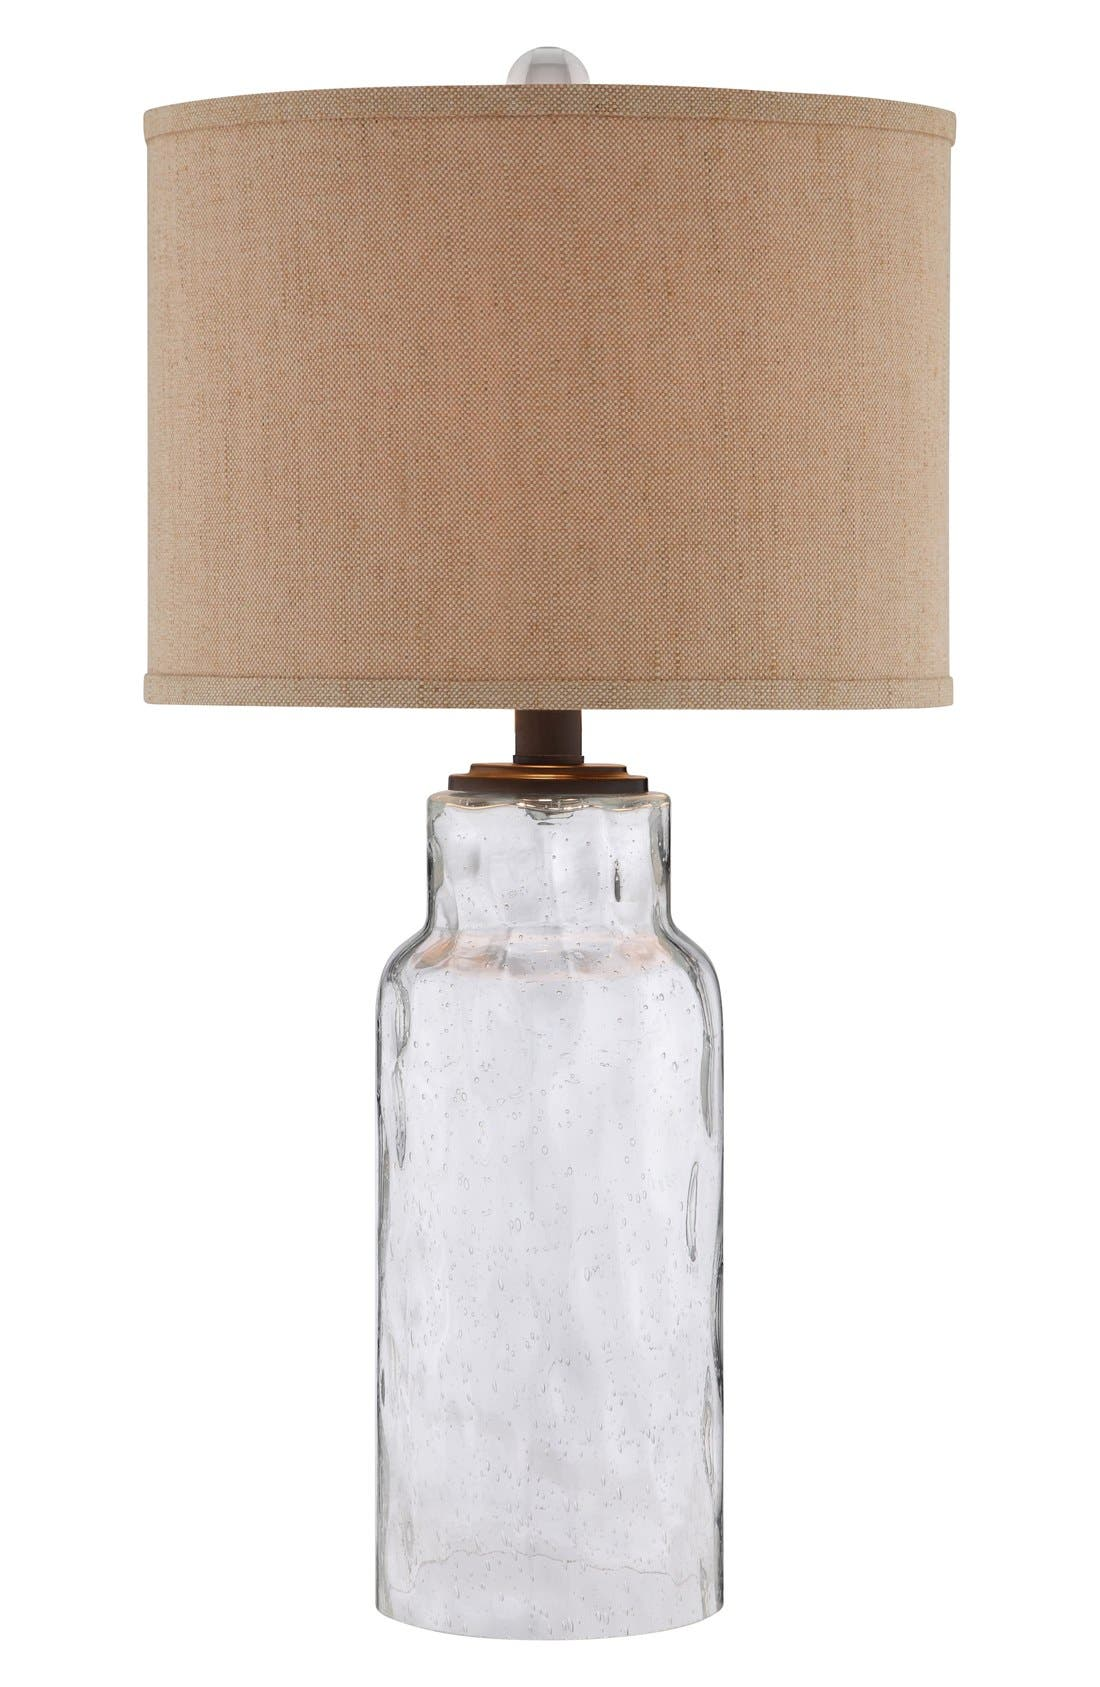 JALEXANDER LIGHTING Clear Dimpled Glass Table Lamp